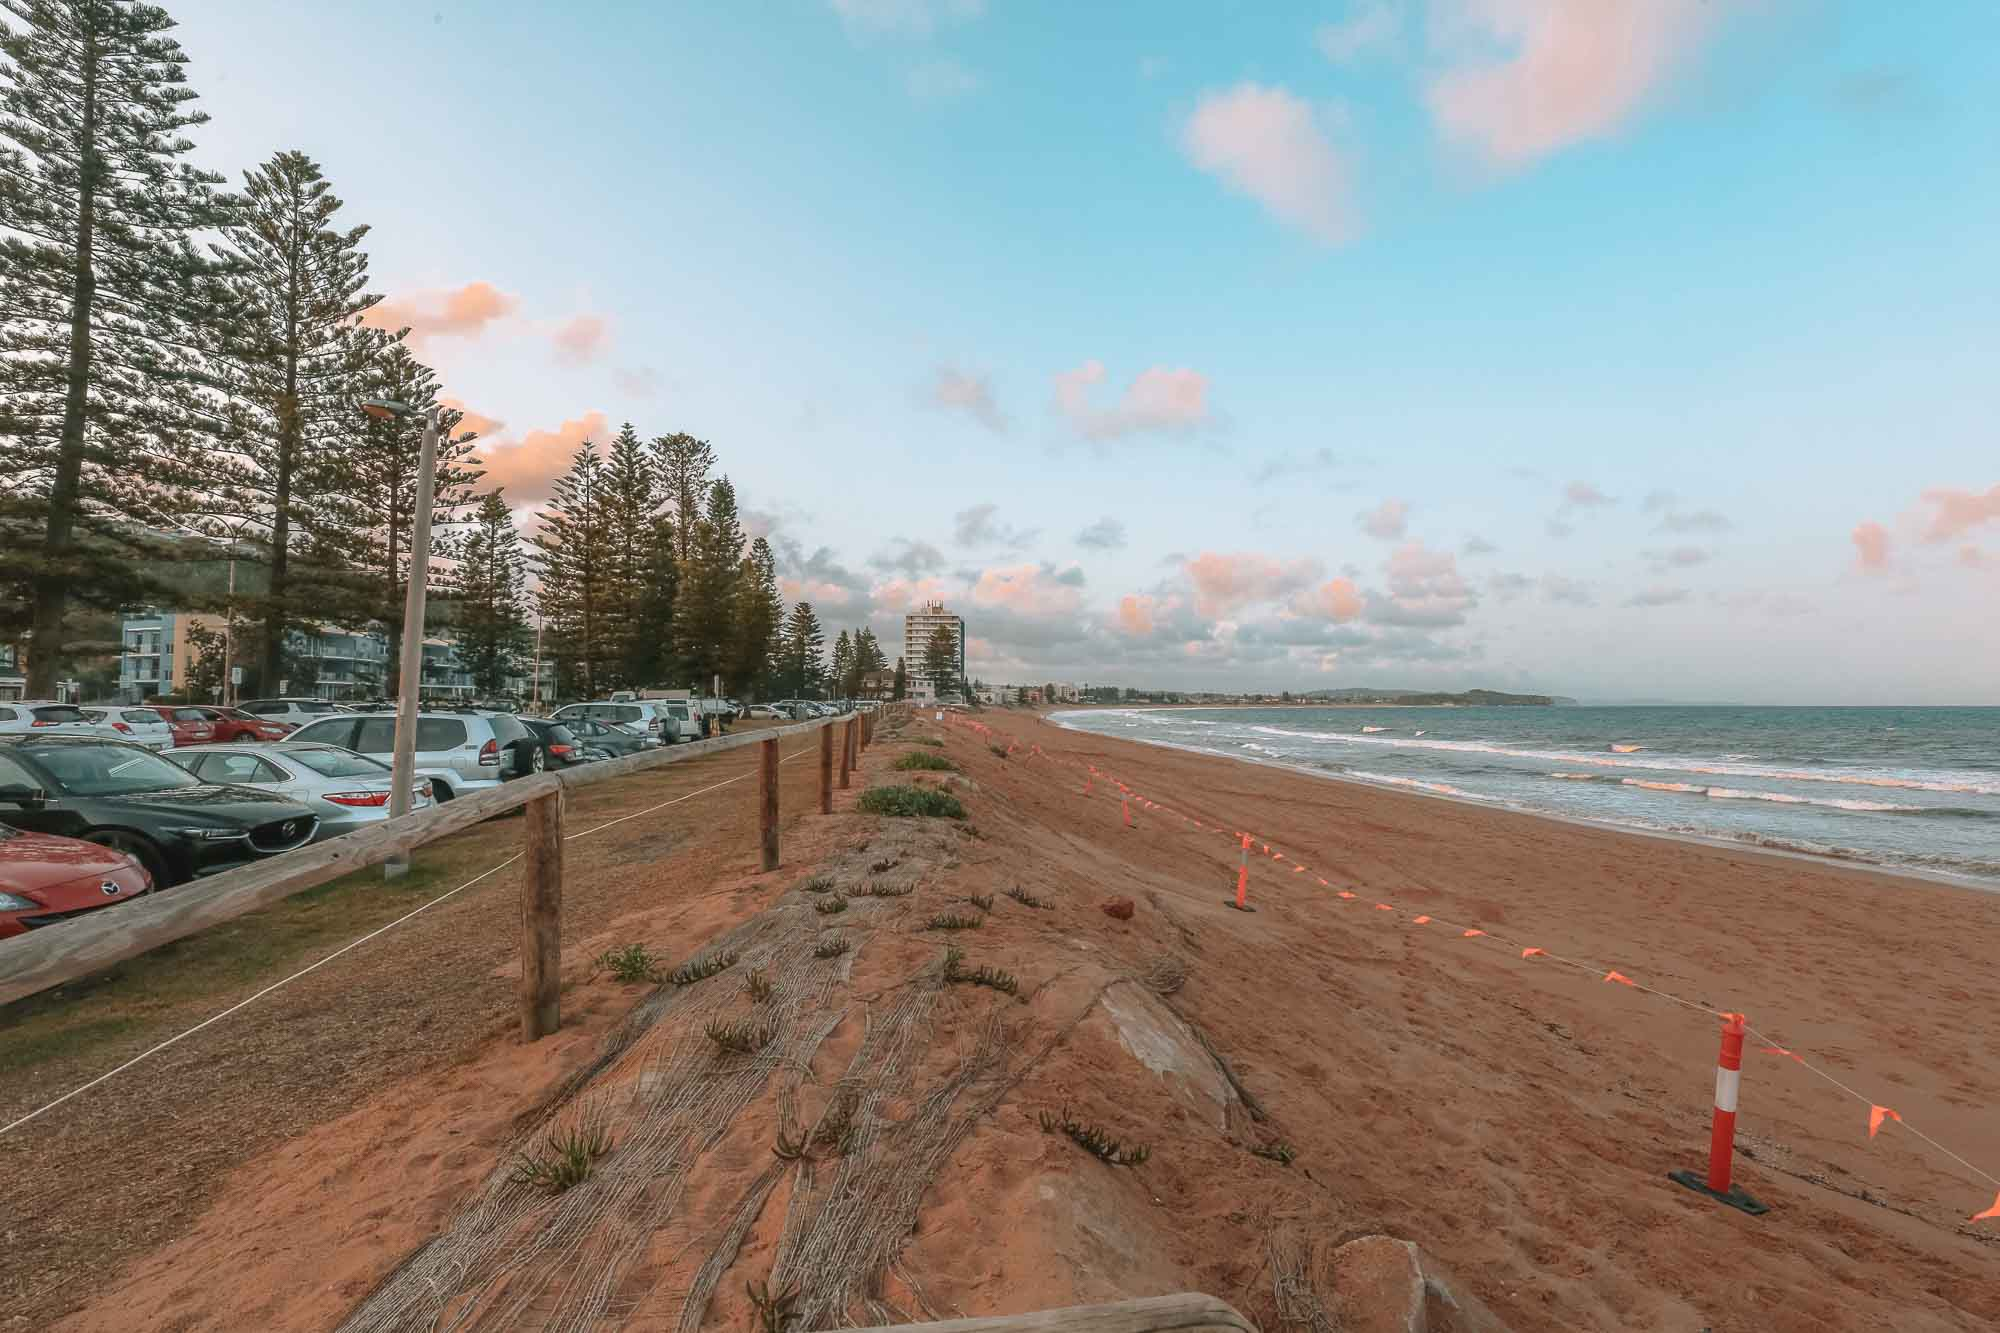 collaroy-beach-northern-beaches-in-sydney